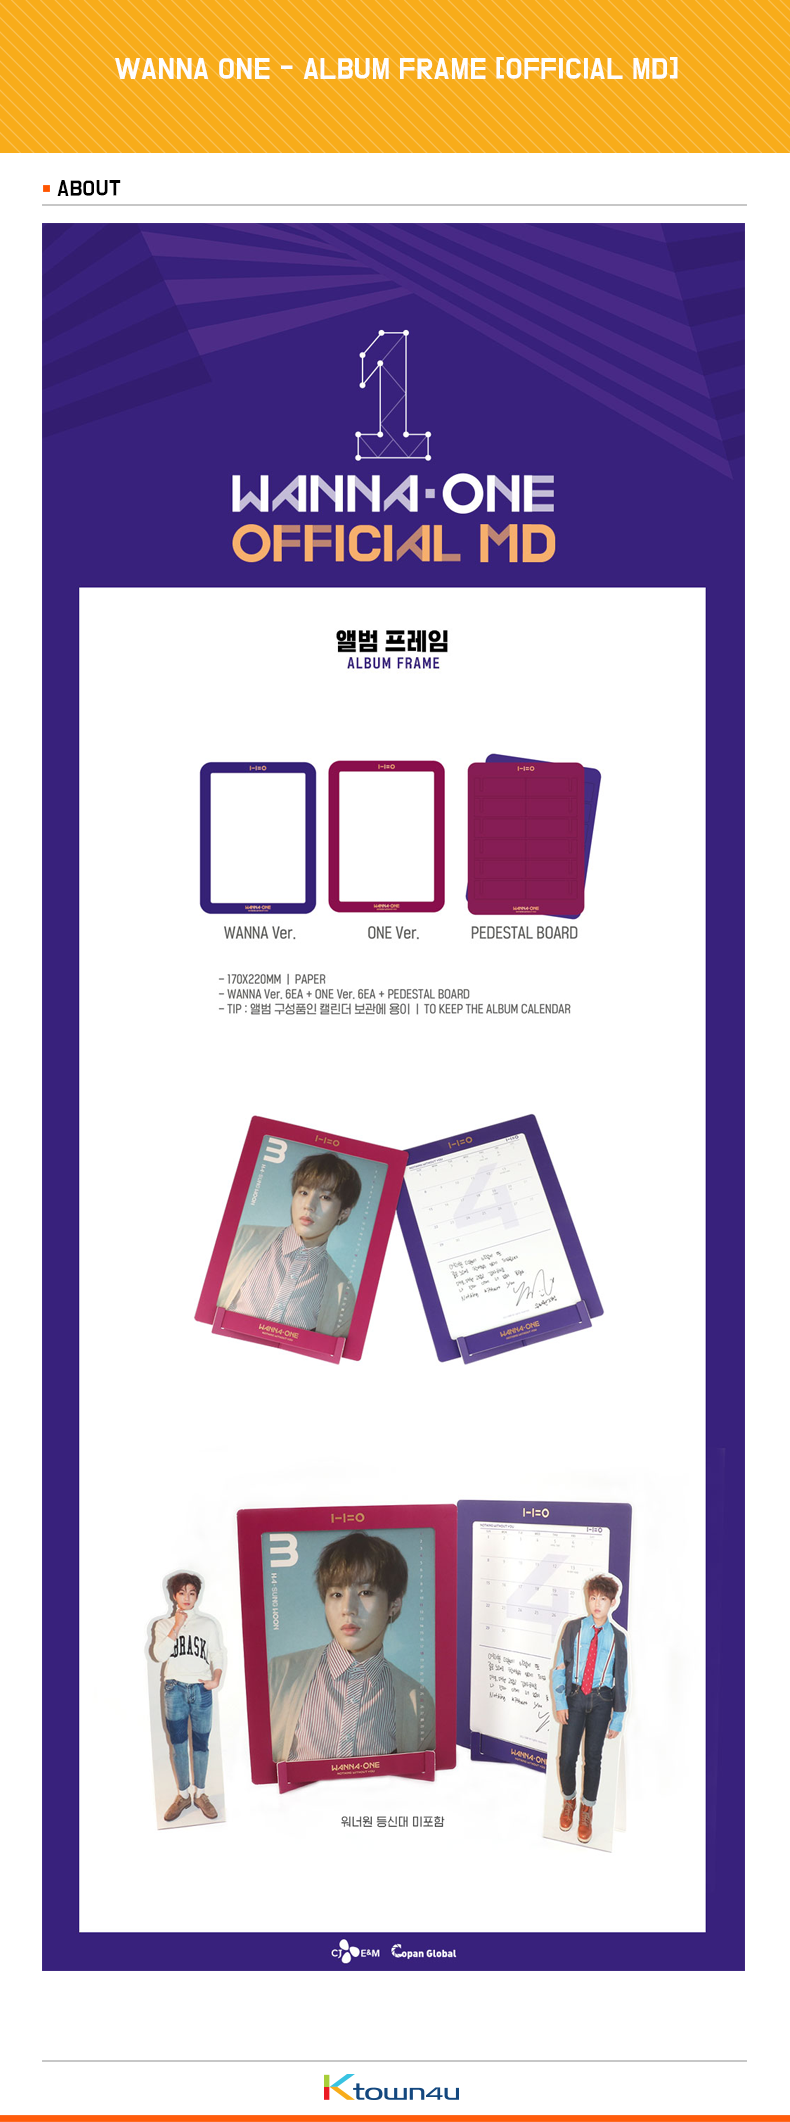 WANNA ONE - ALBUM FRAME [OFFICIAL MD]